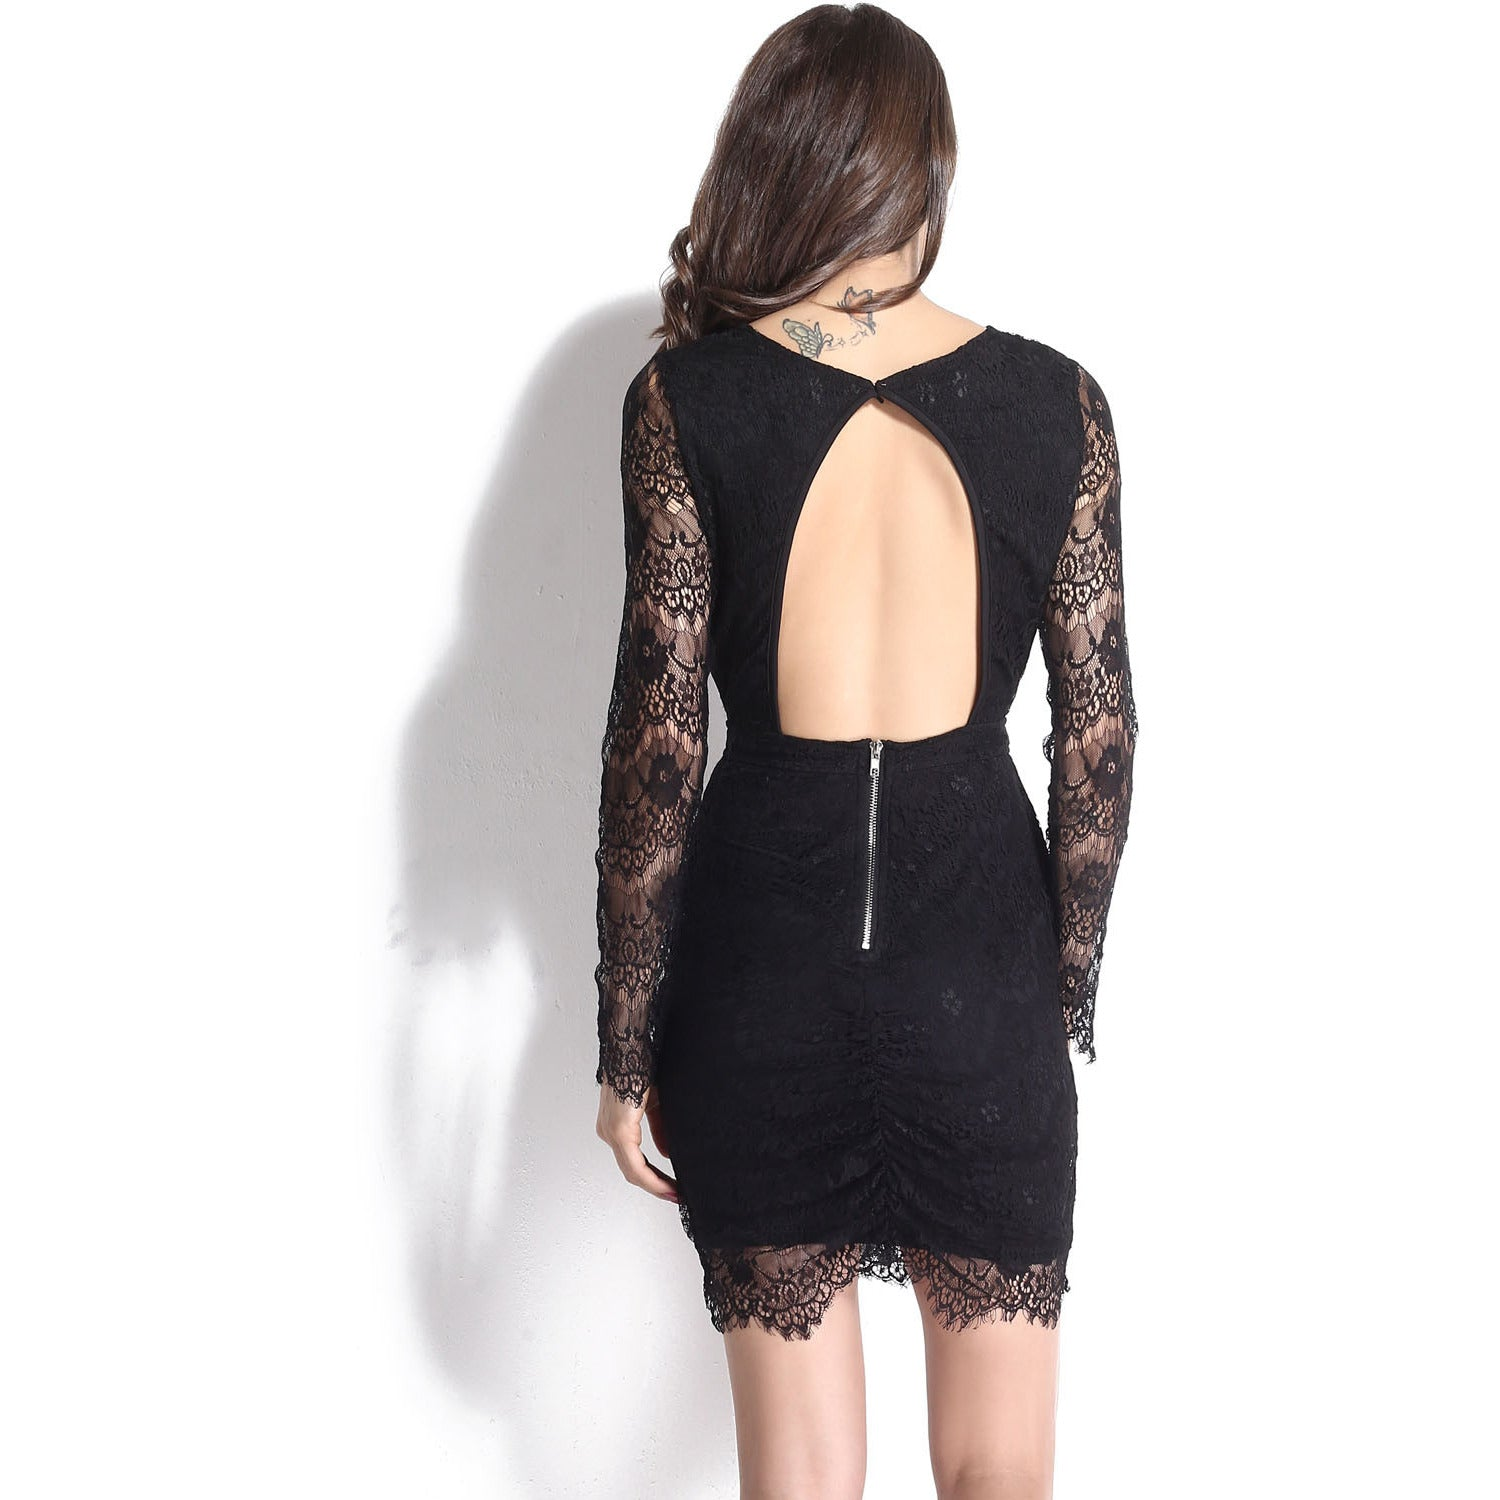 V-Neck Sleeve Lace Mini Dress Sale LAVELIQ - LAVELIQ - 7